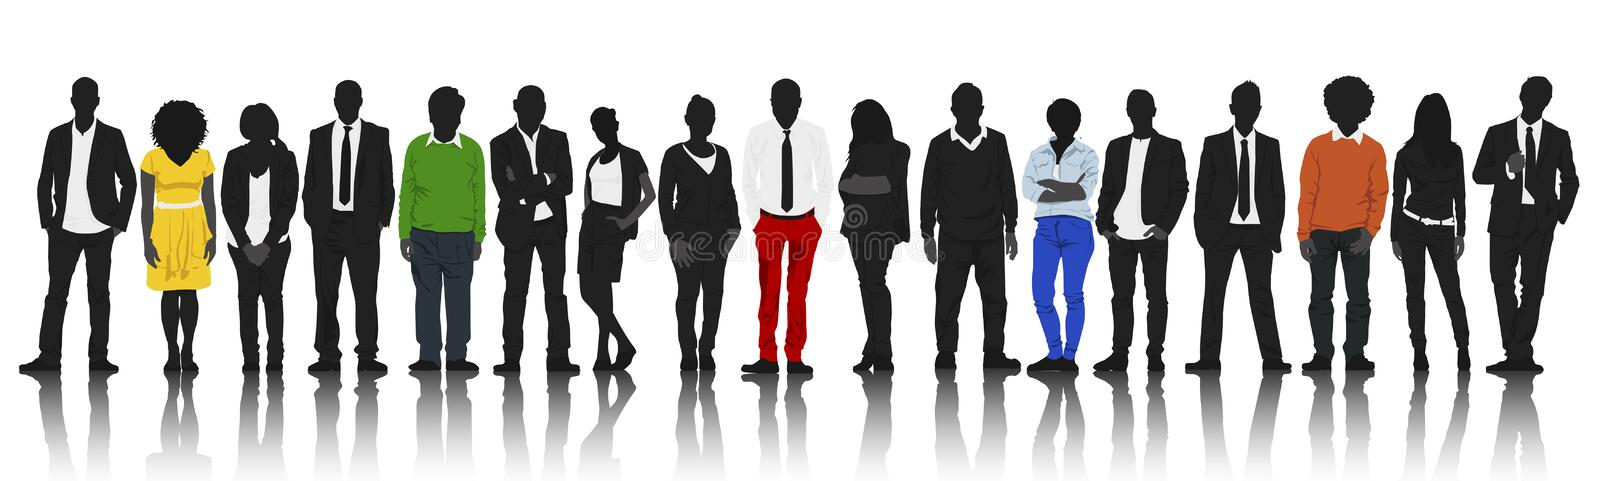 Silhouettes of People in a Row with some Colour royalty free illustration